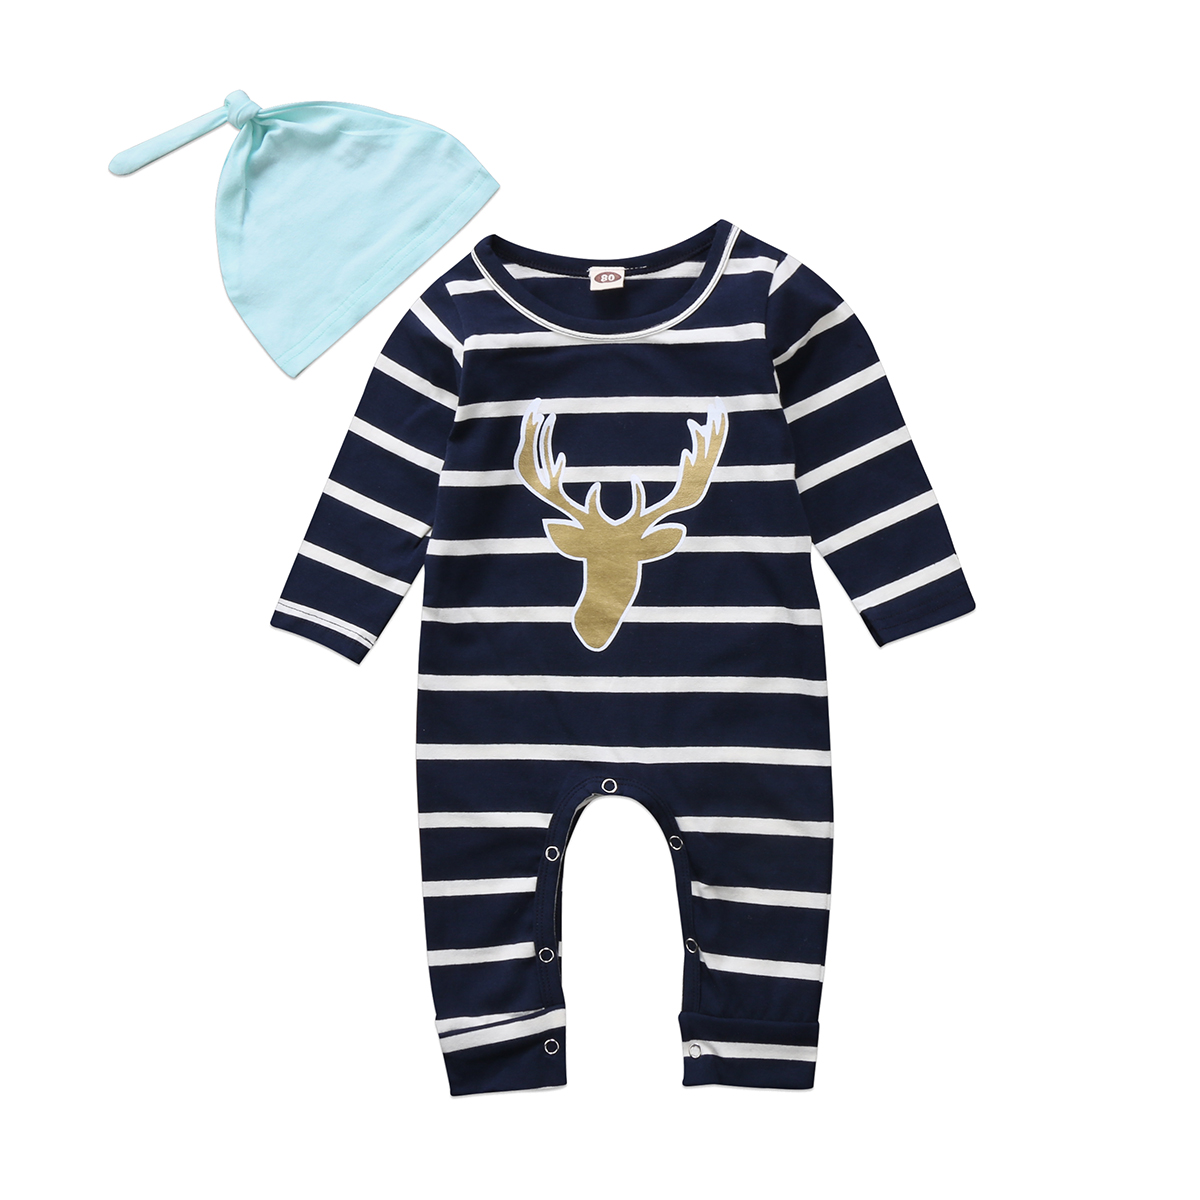 Kid Infant Baby Boy Girls Long Sleeve Casual Romper Jumpsuit Outfit Set Clothes+Hat 0-24M